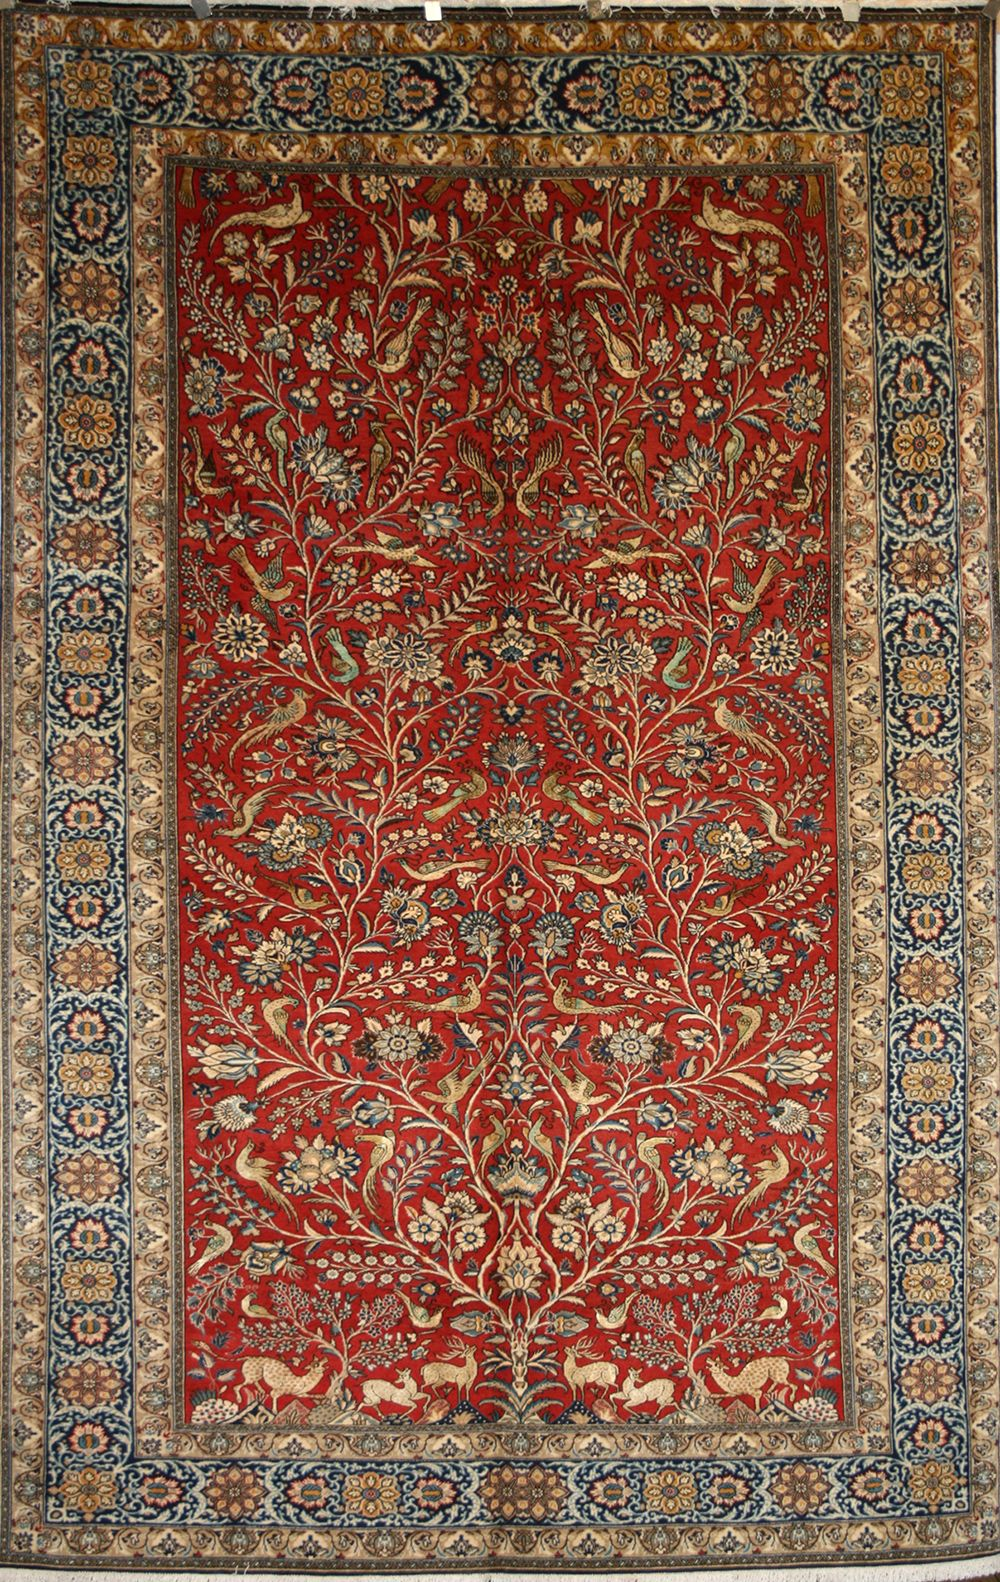 Wool And Silk Qom Rug In Tree Of Life Pattern 8995